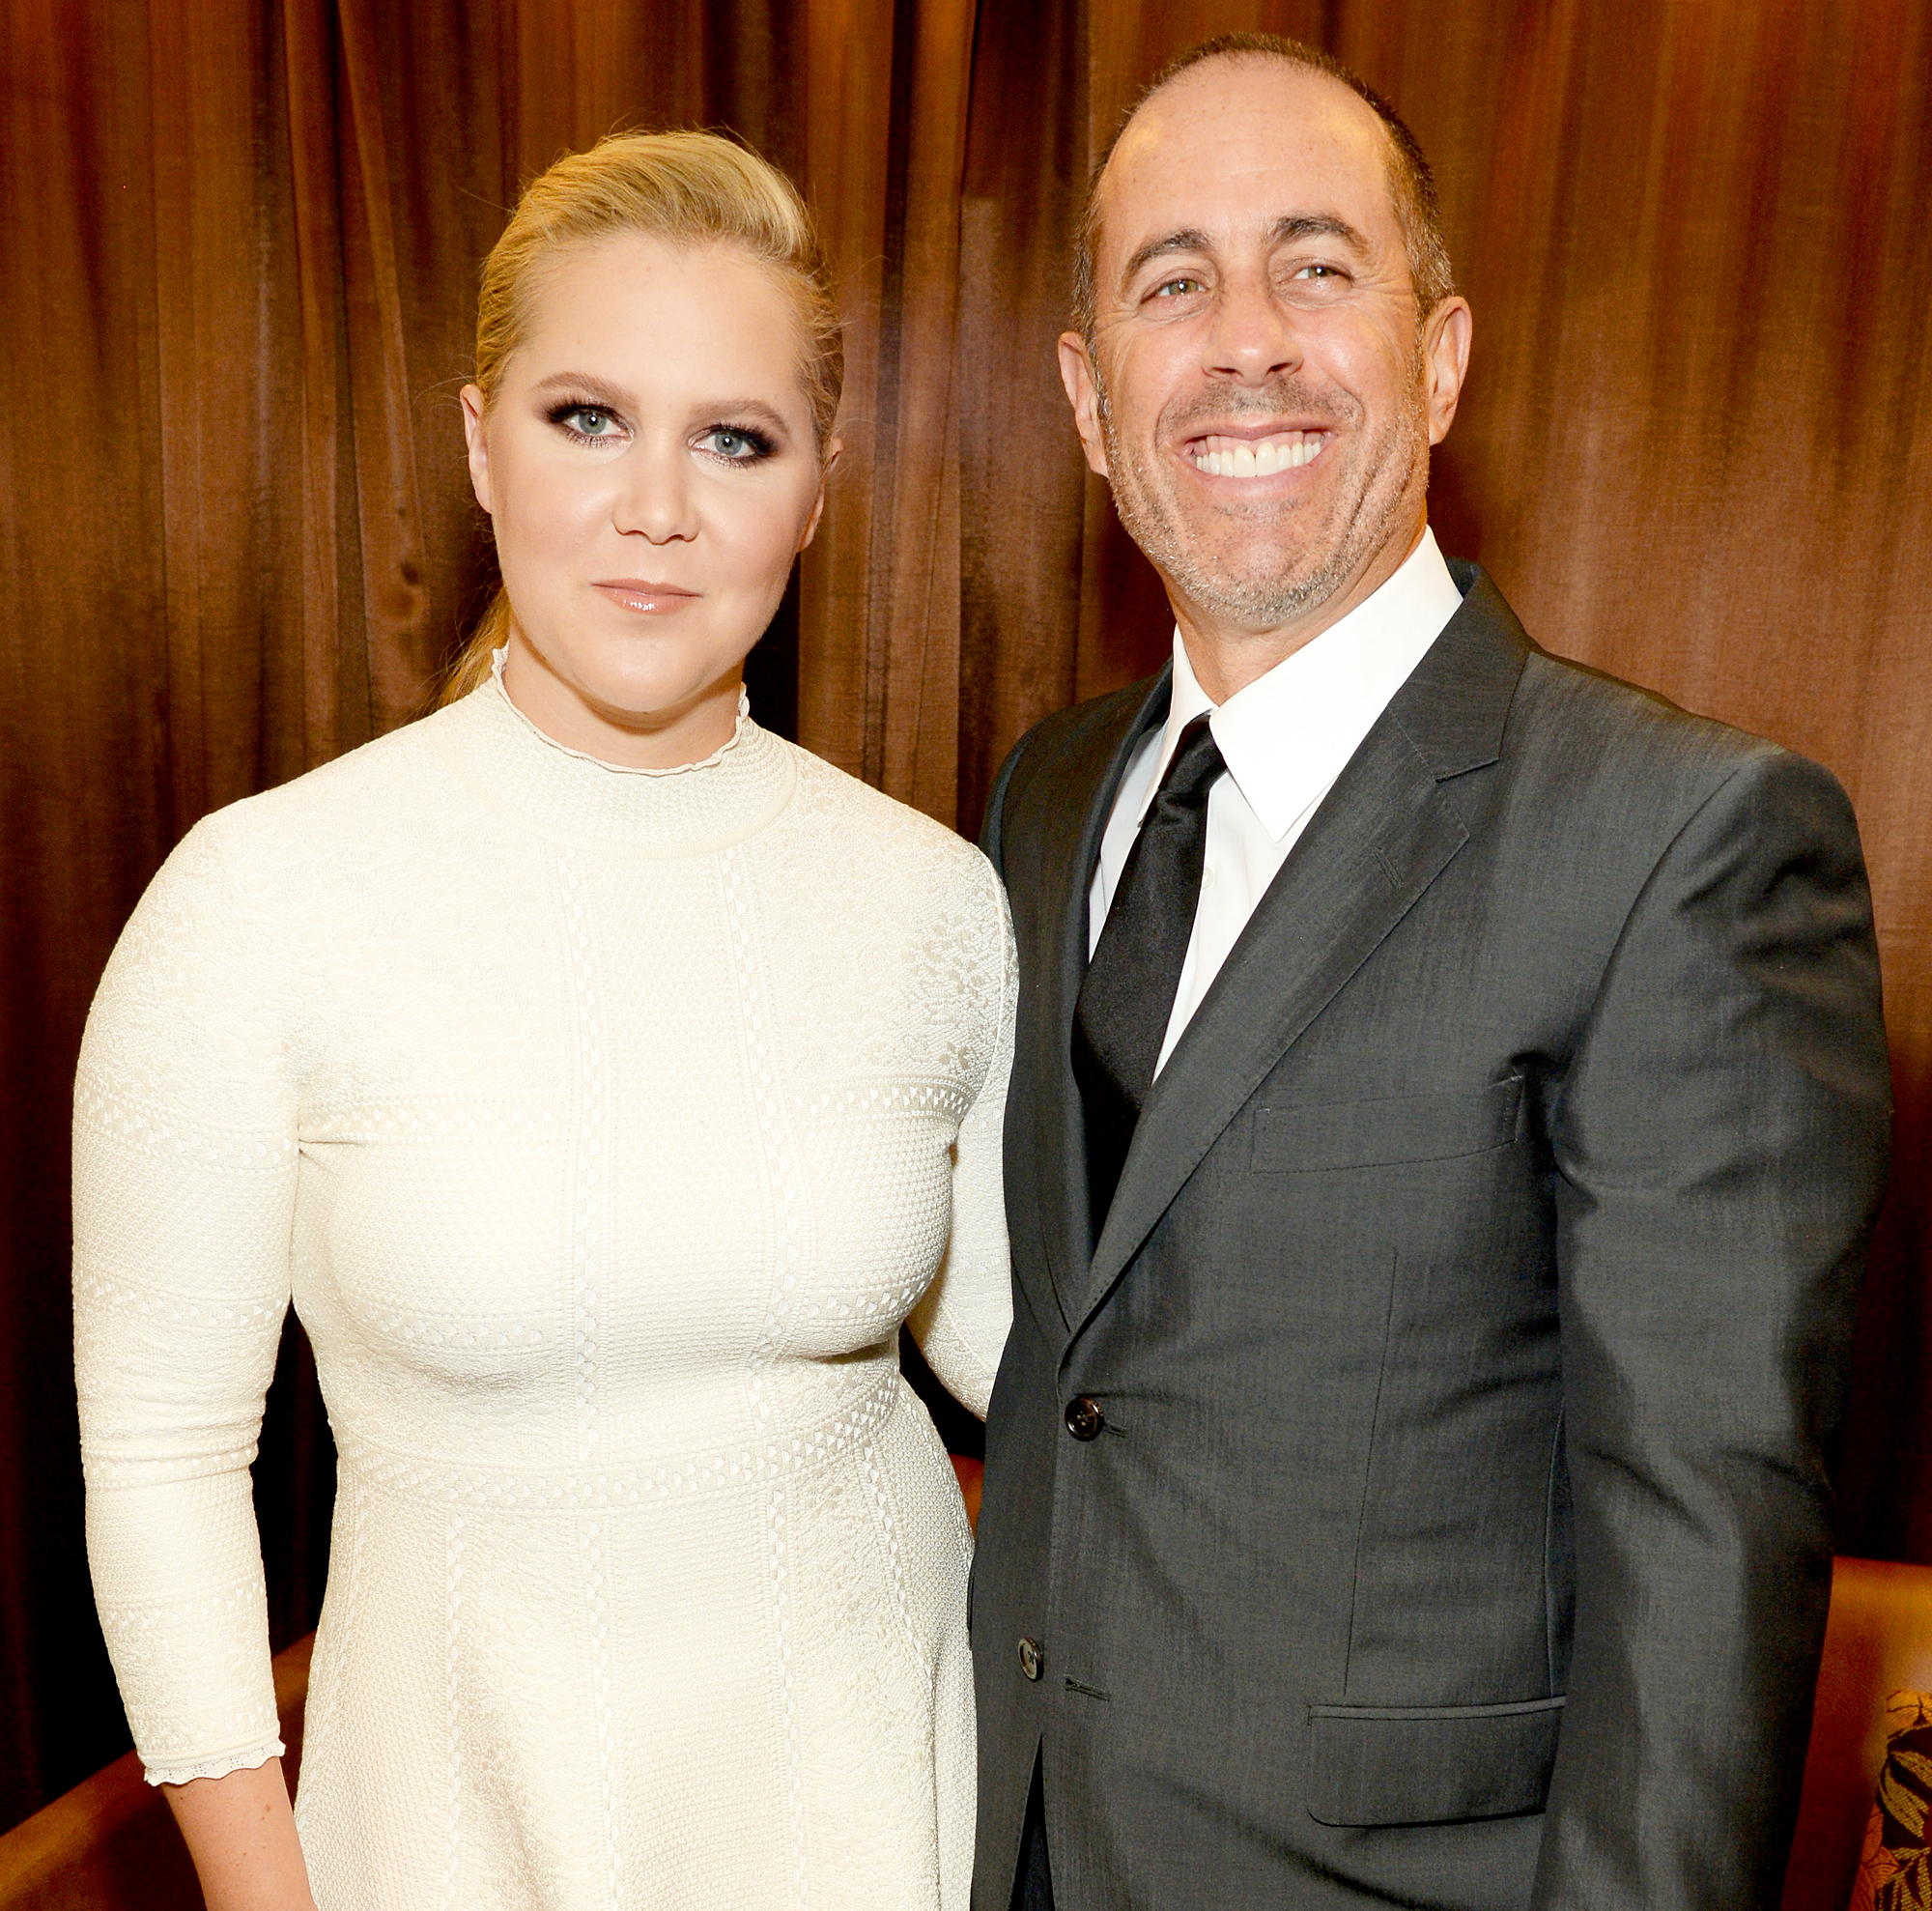 Amy Schumer and Jerry Seinfeld